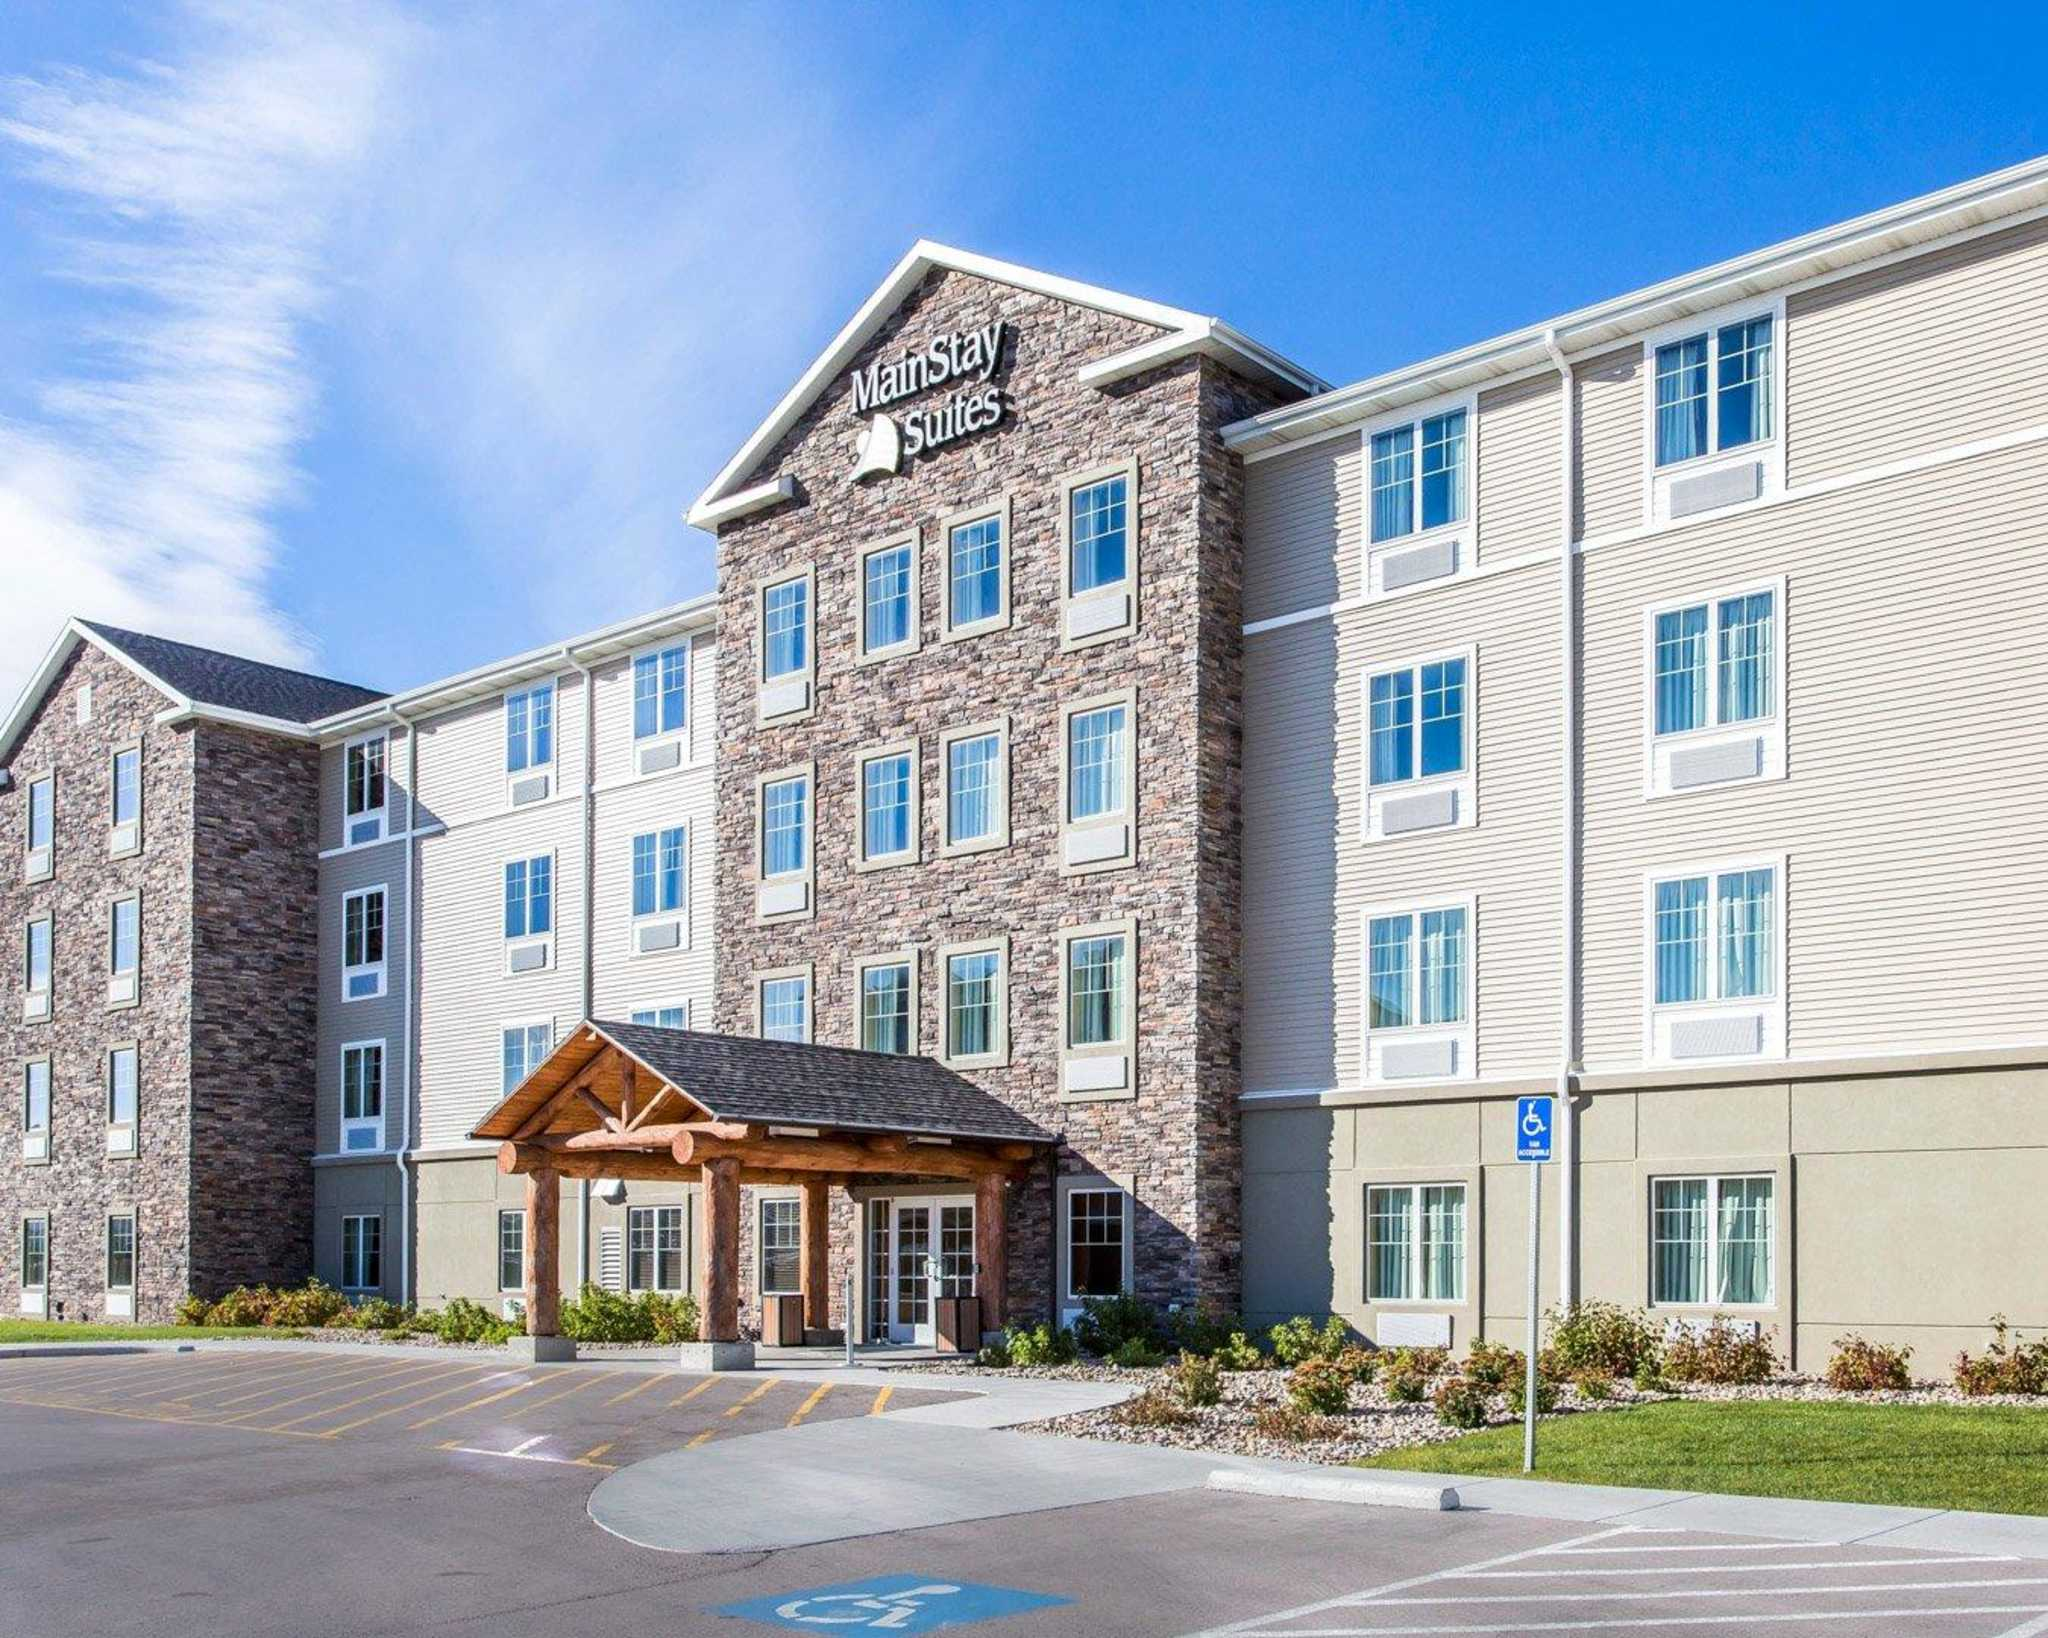 Mainstay Suites Coupons Near Me In Rapid City 8coupons